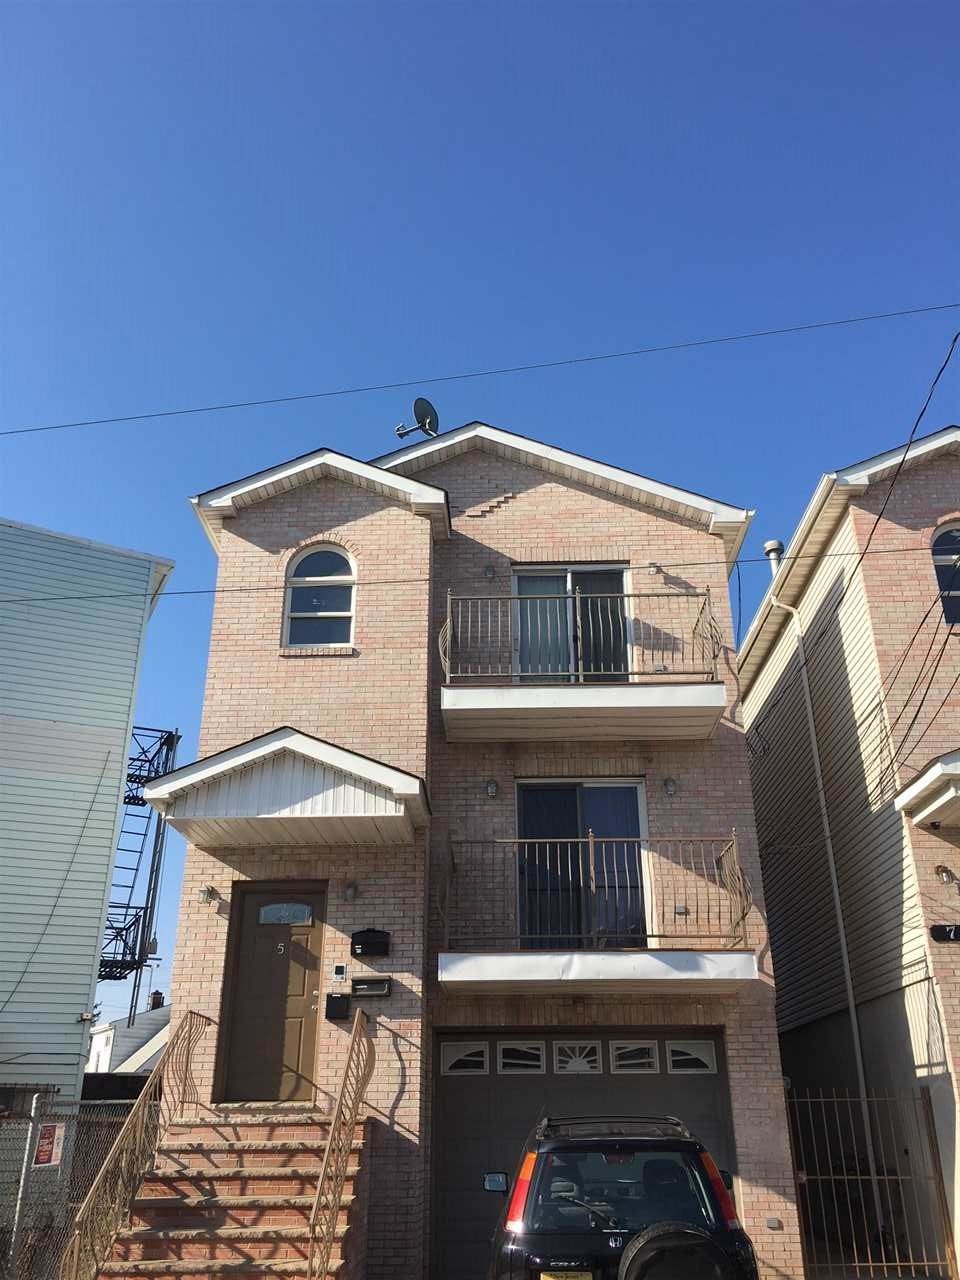 5 Long St 1 Jersey City Nj 07305 3 Bedroom Apartment For Rent For 1 500 Month Zumper